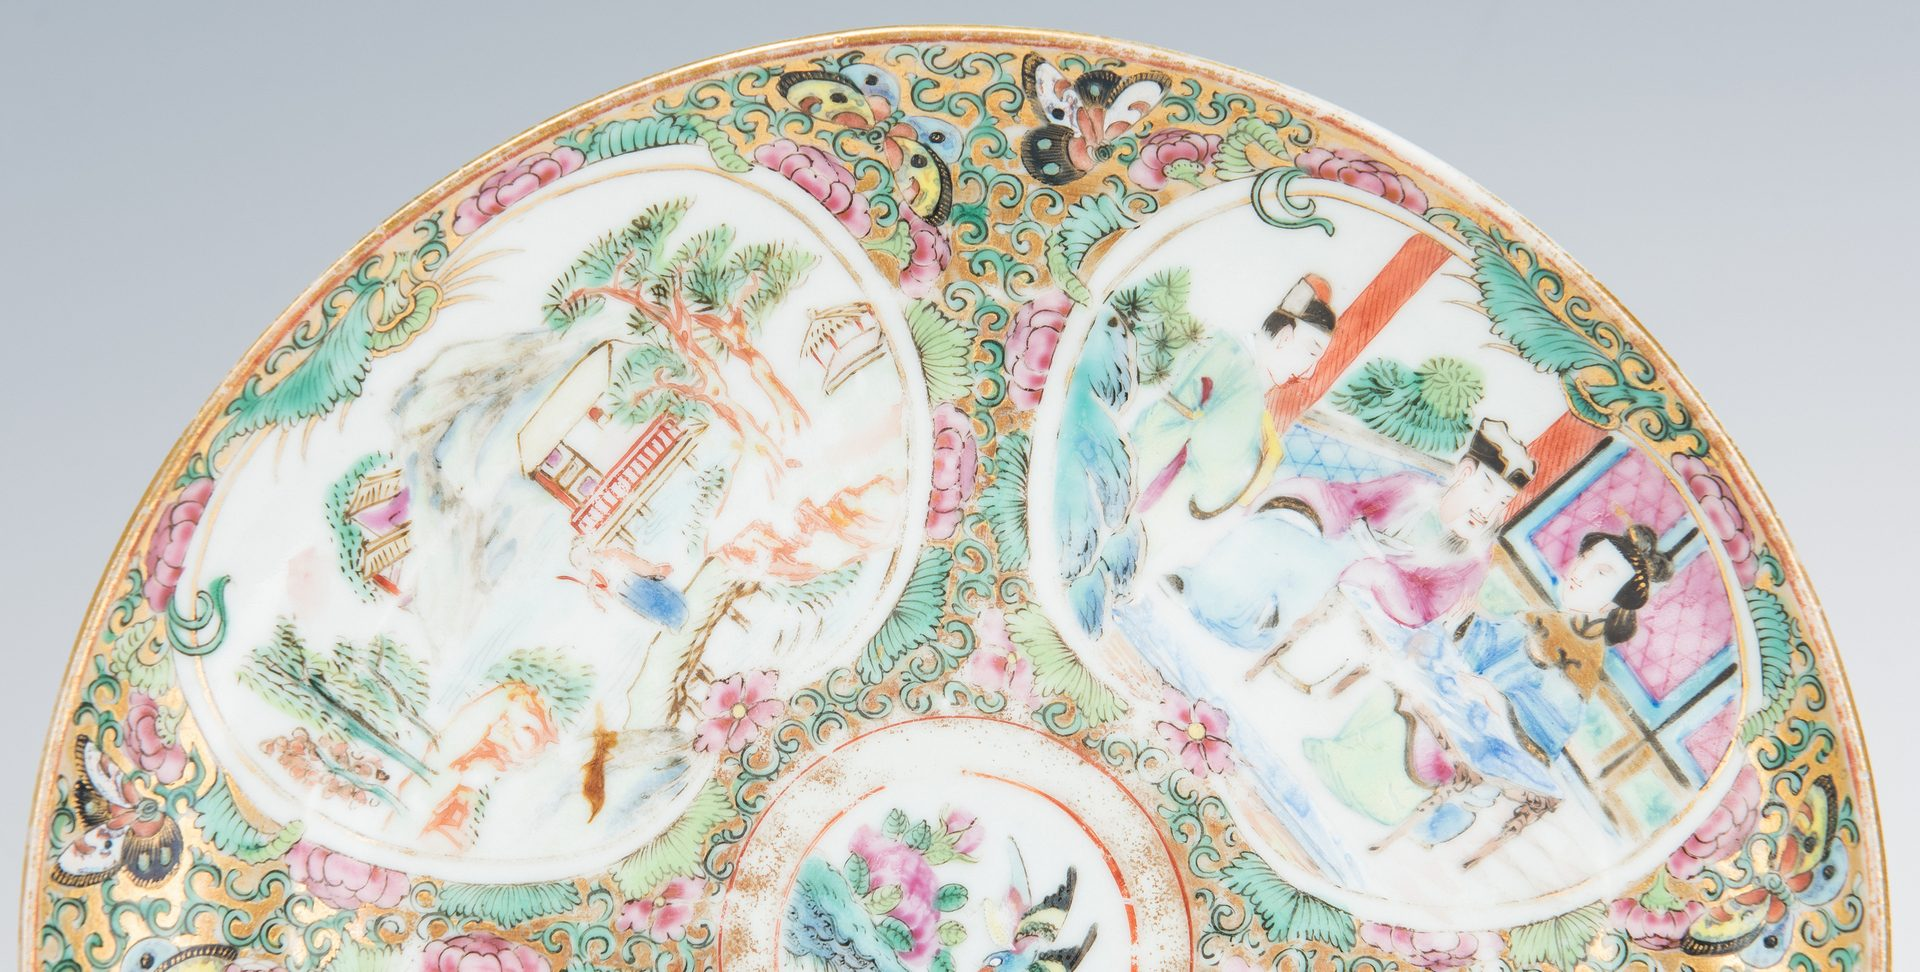 Lot 314: 5 Chinese Export Porcelain Items, incl. Rose Medallion, Famille Rose